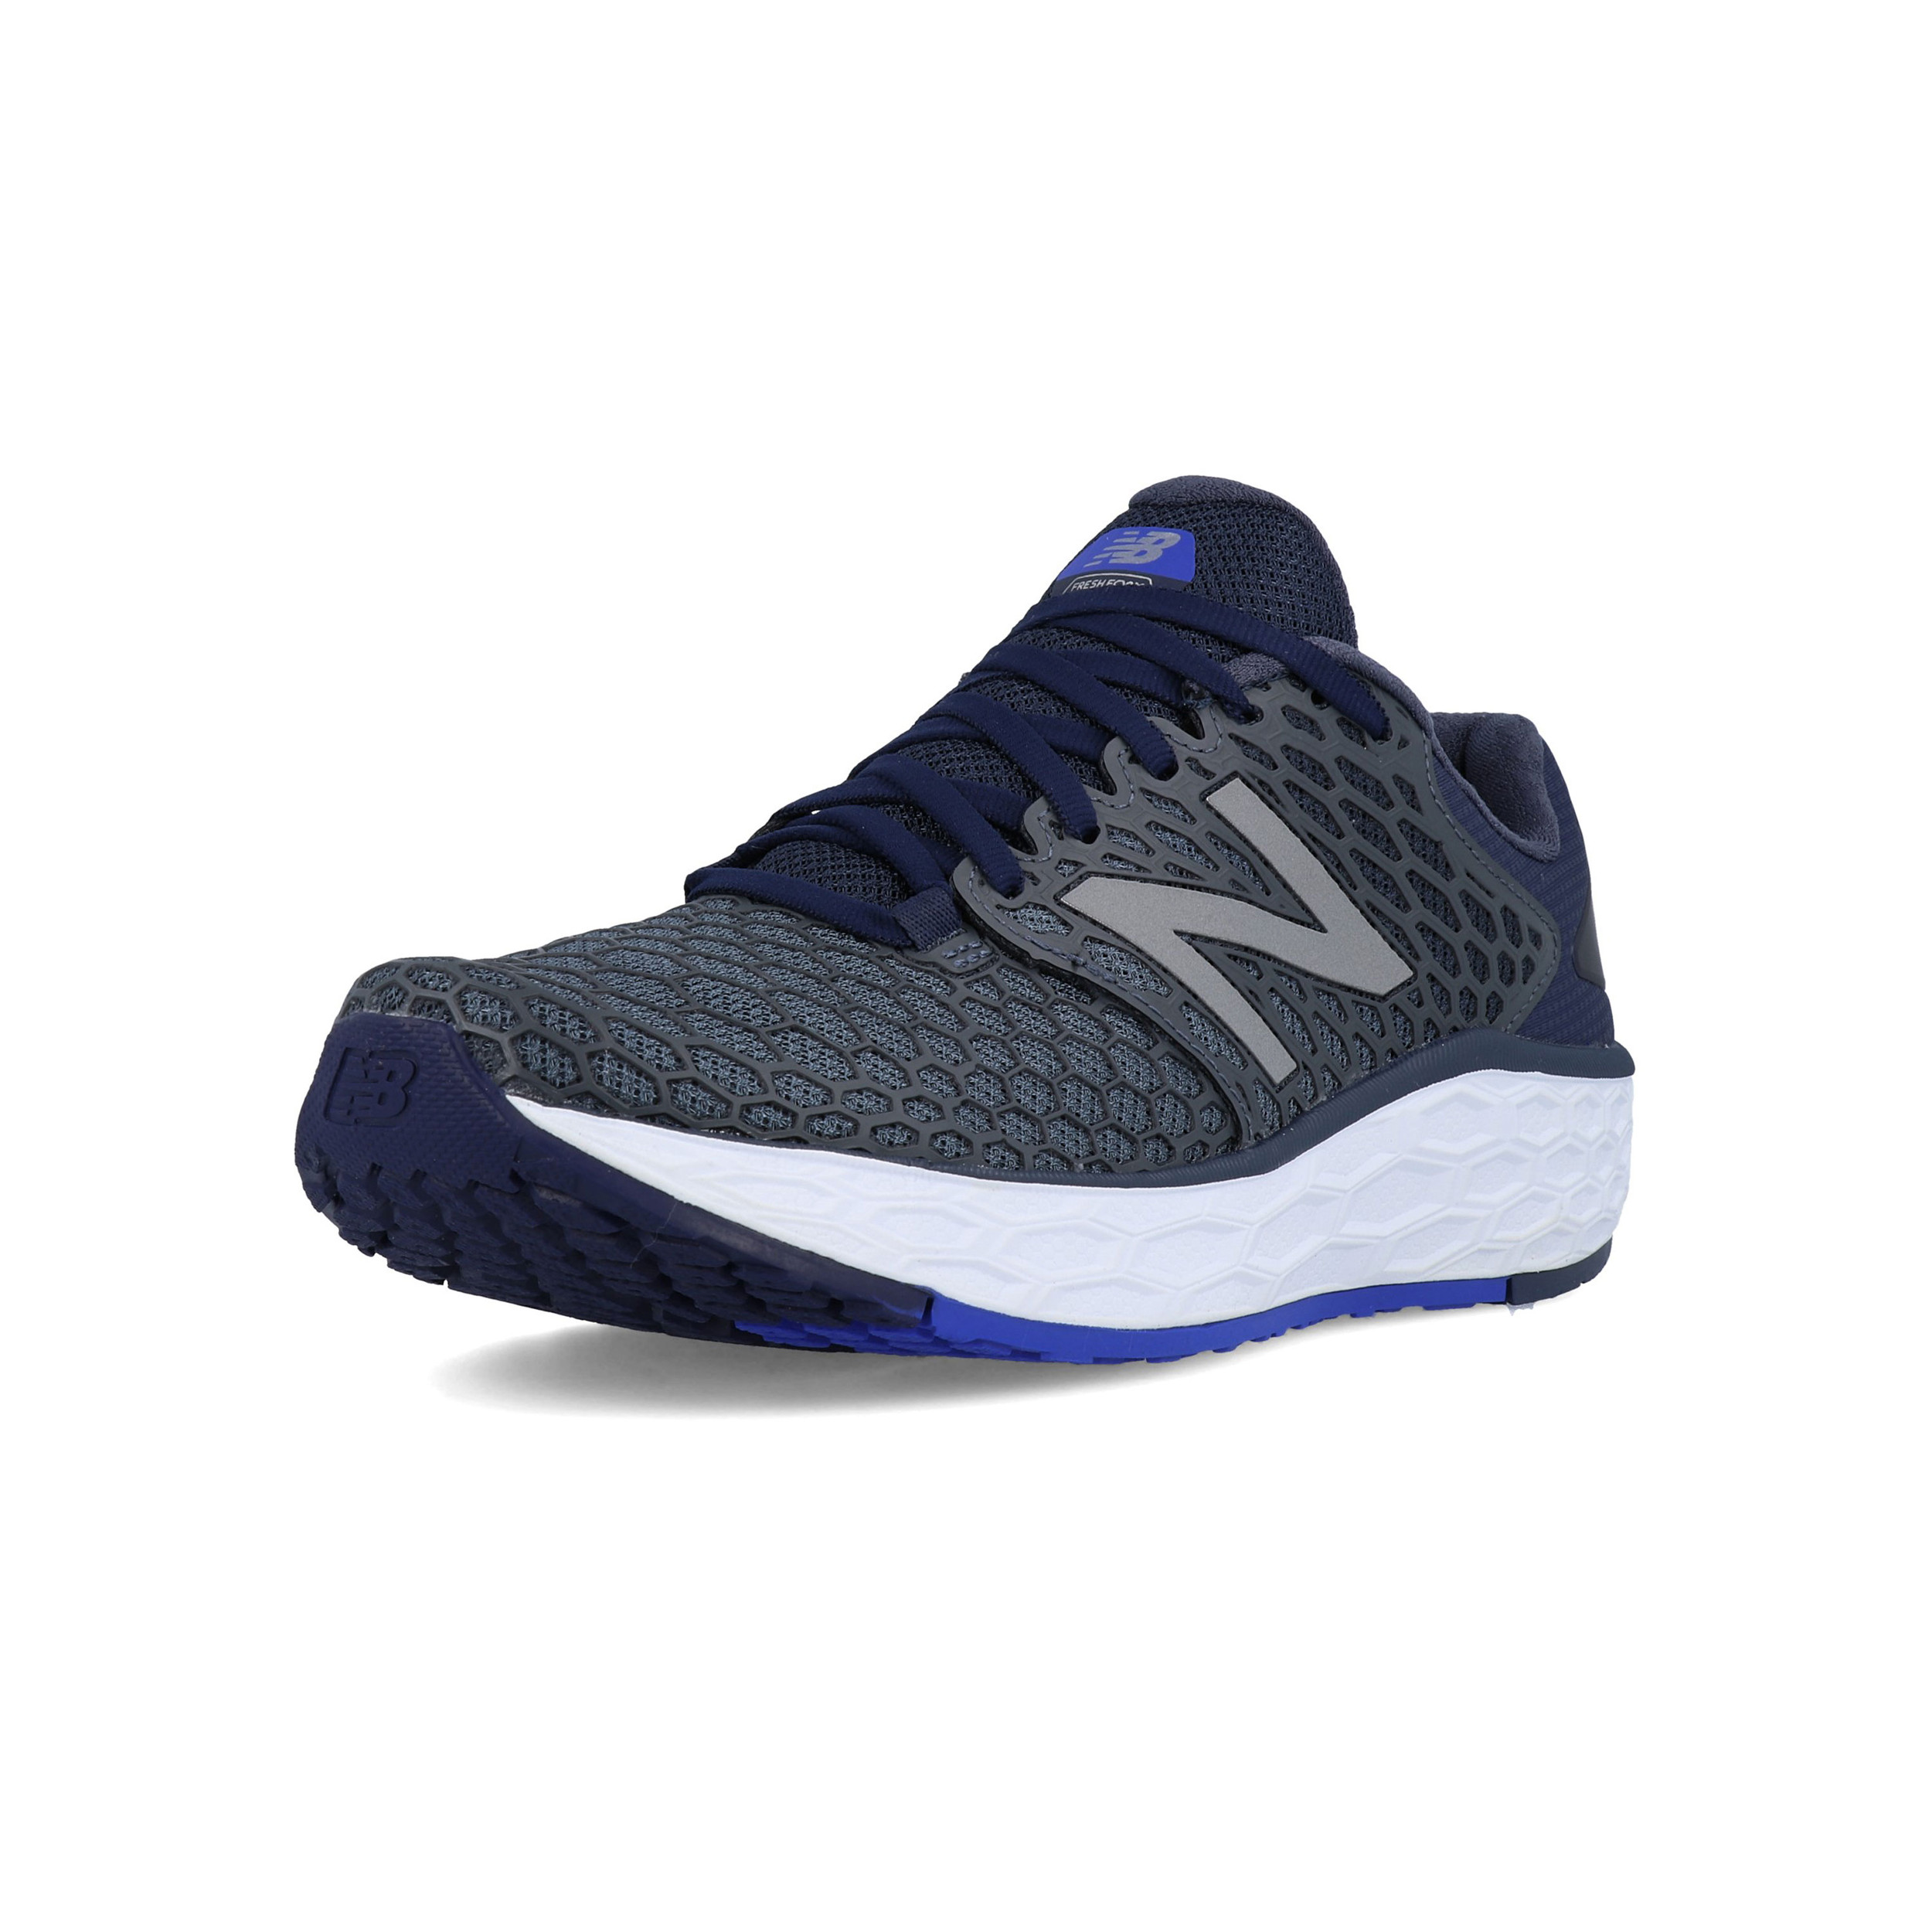 ed9ec0fd801 Details about New Balance Mens Fresh Foam Vongo v3 Running Shoes Trainers  Sneakers Blue Grey